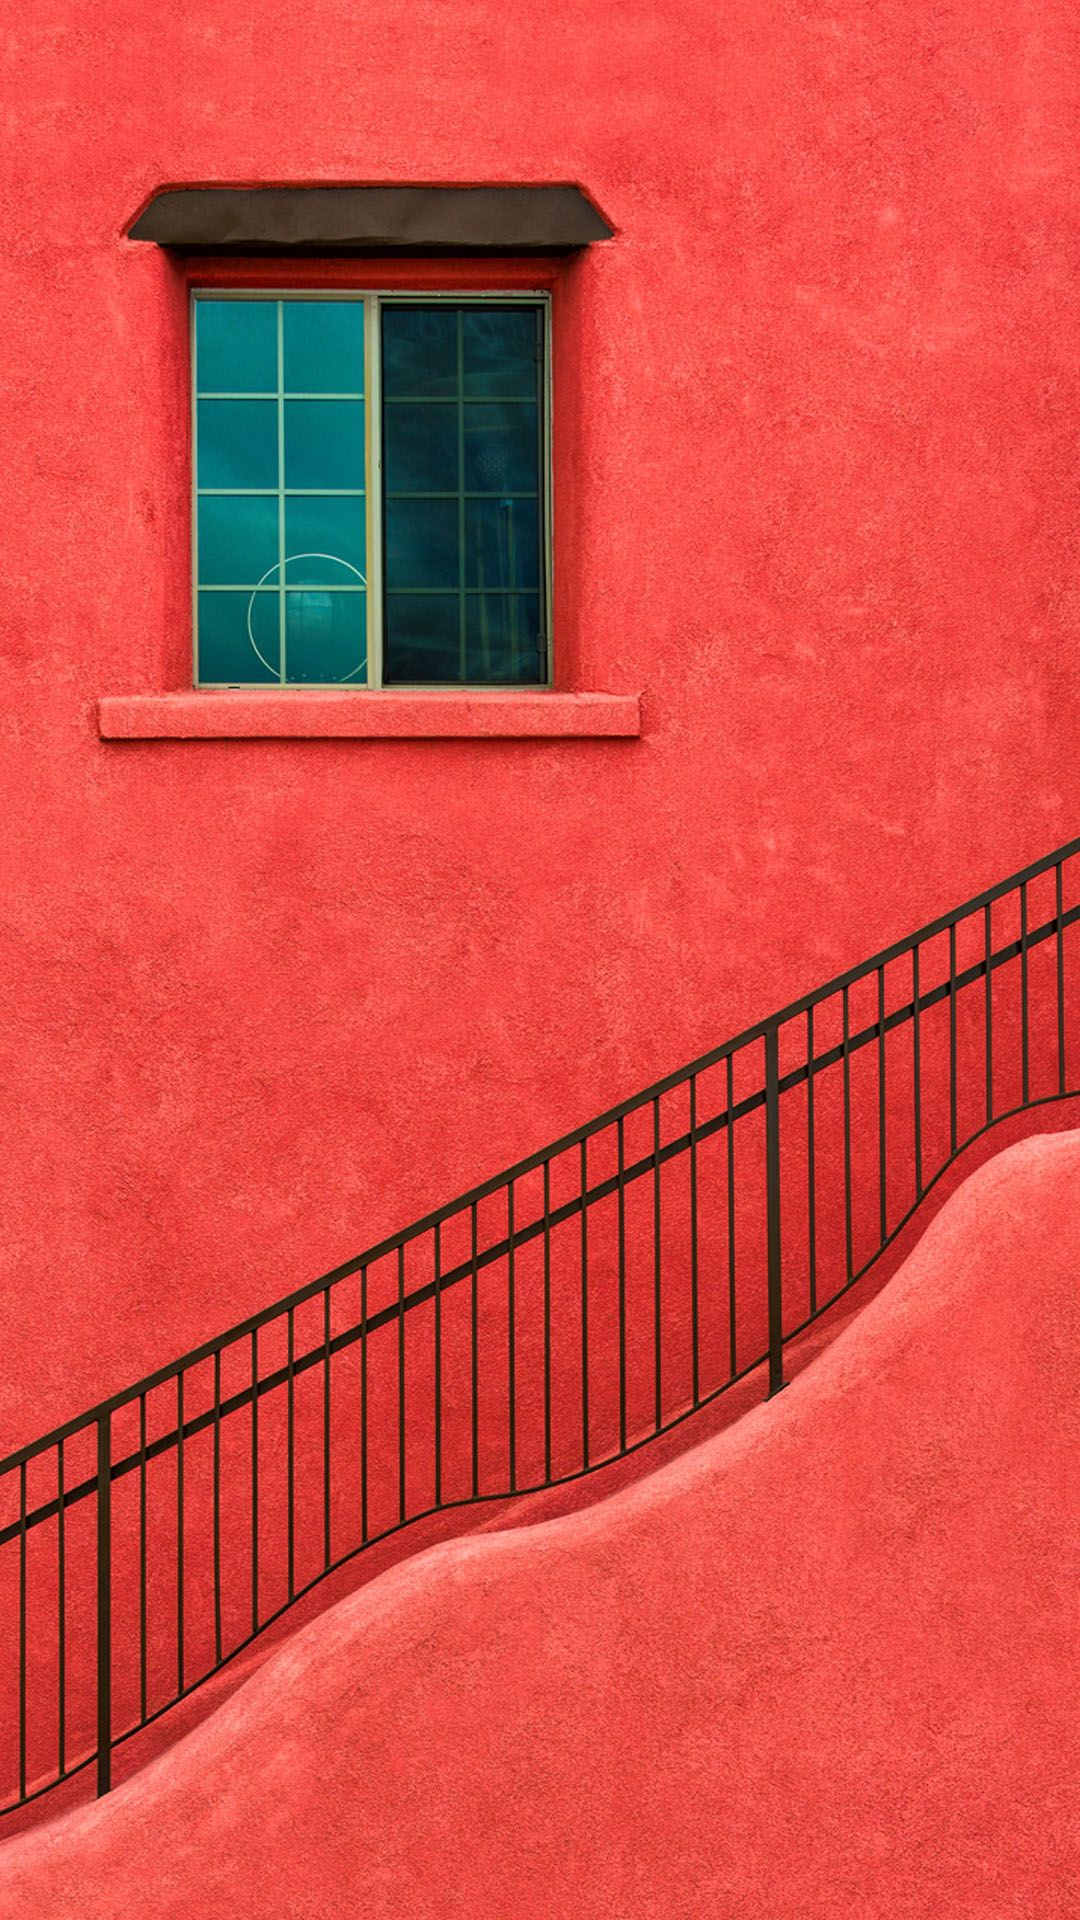 Red House Wall Window Stairs Iphone 6 Plus Hd Wallpaper In